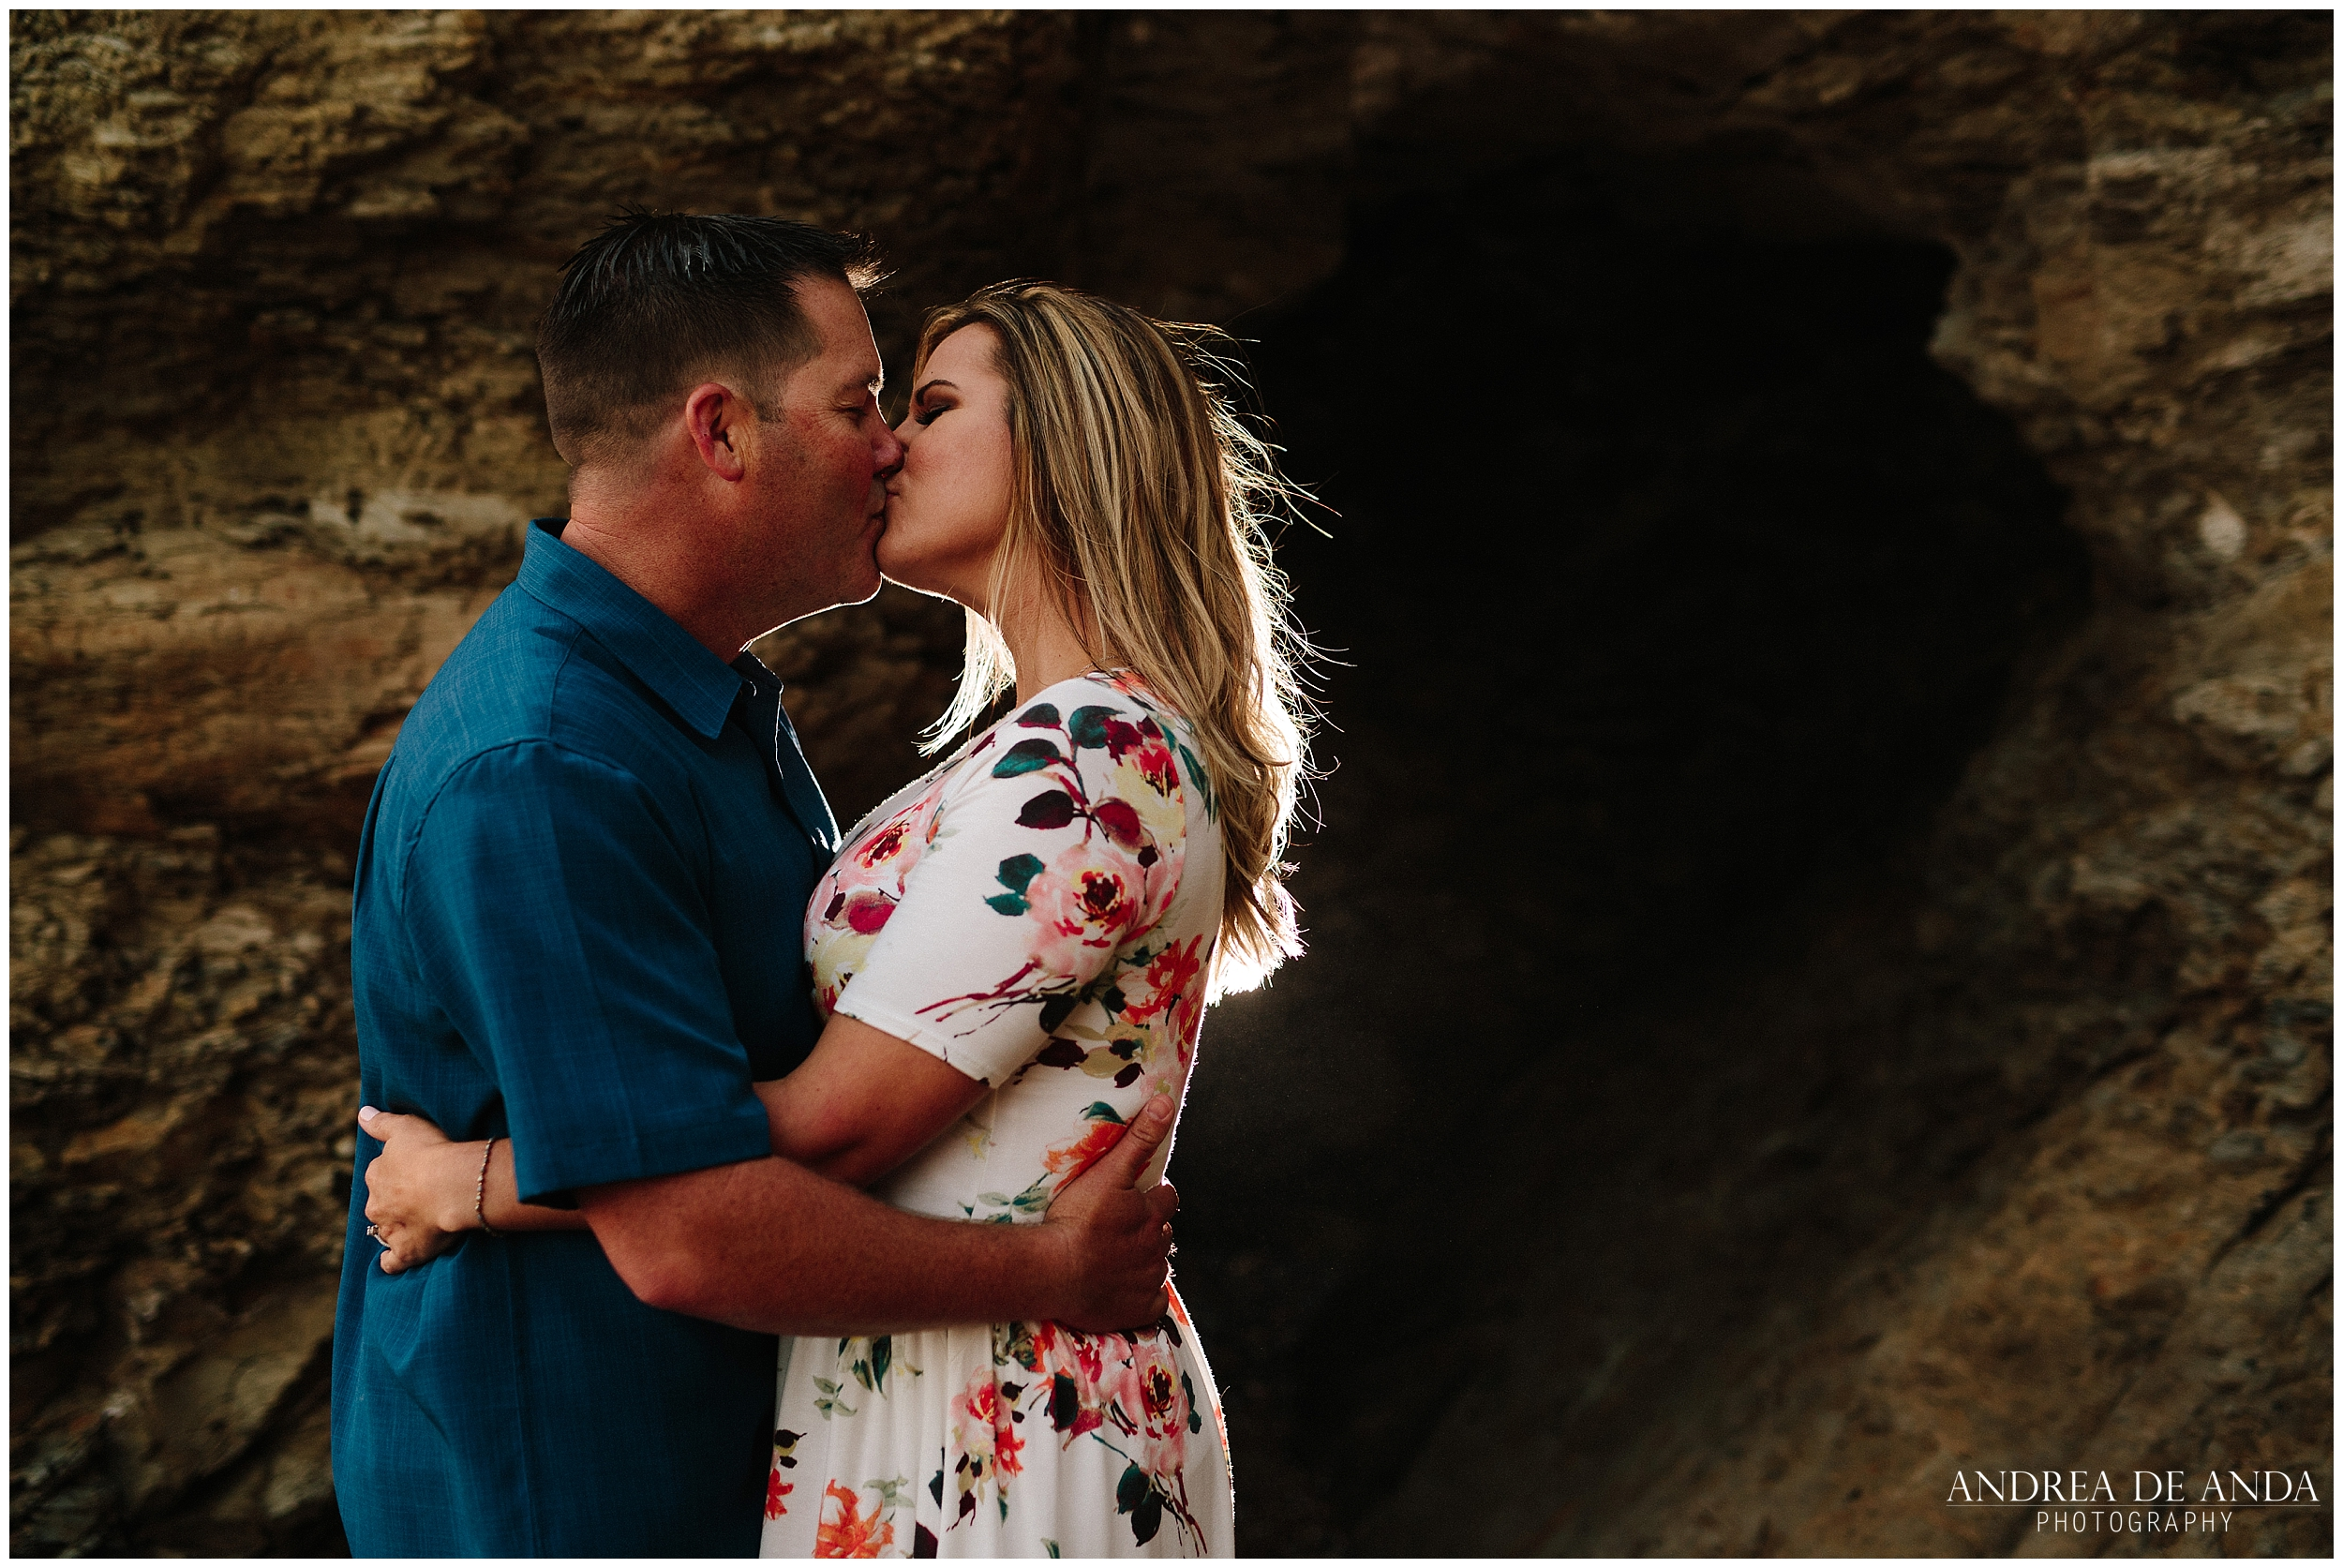 Bay area beach engagement session by Andrea de Anda Photography__0008.jpg